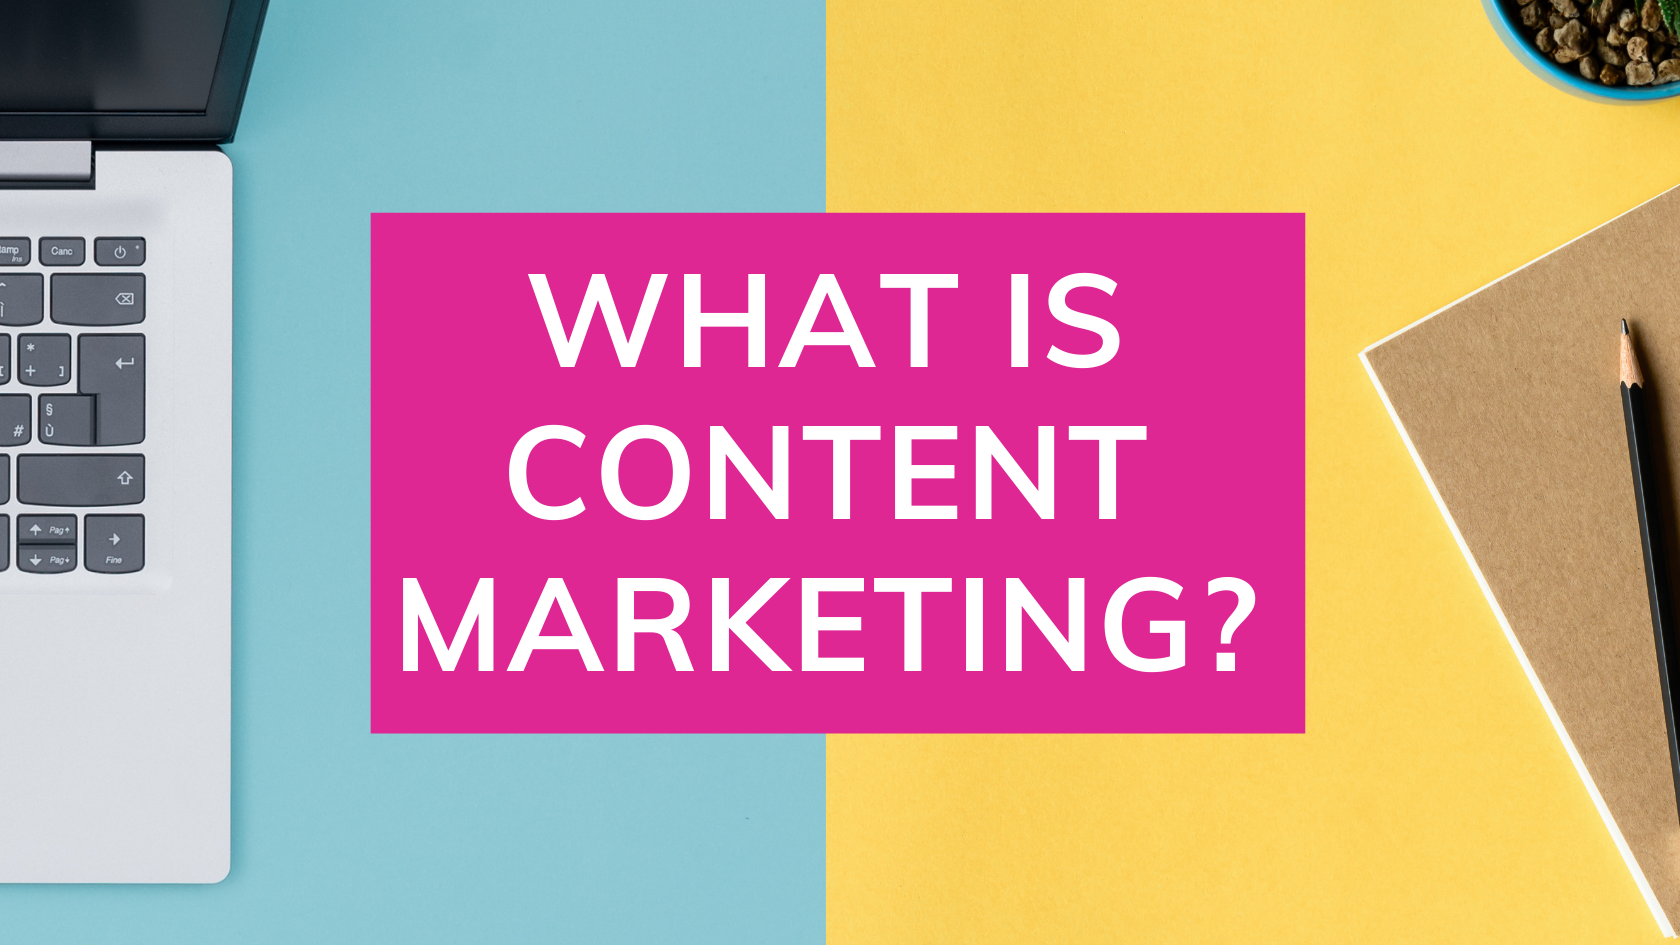 digital marketing, what is content marketing, content marketing, content marketing definition, examples of content marketing